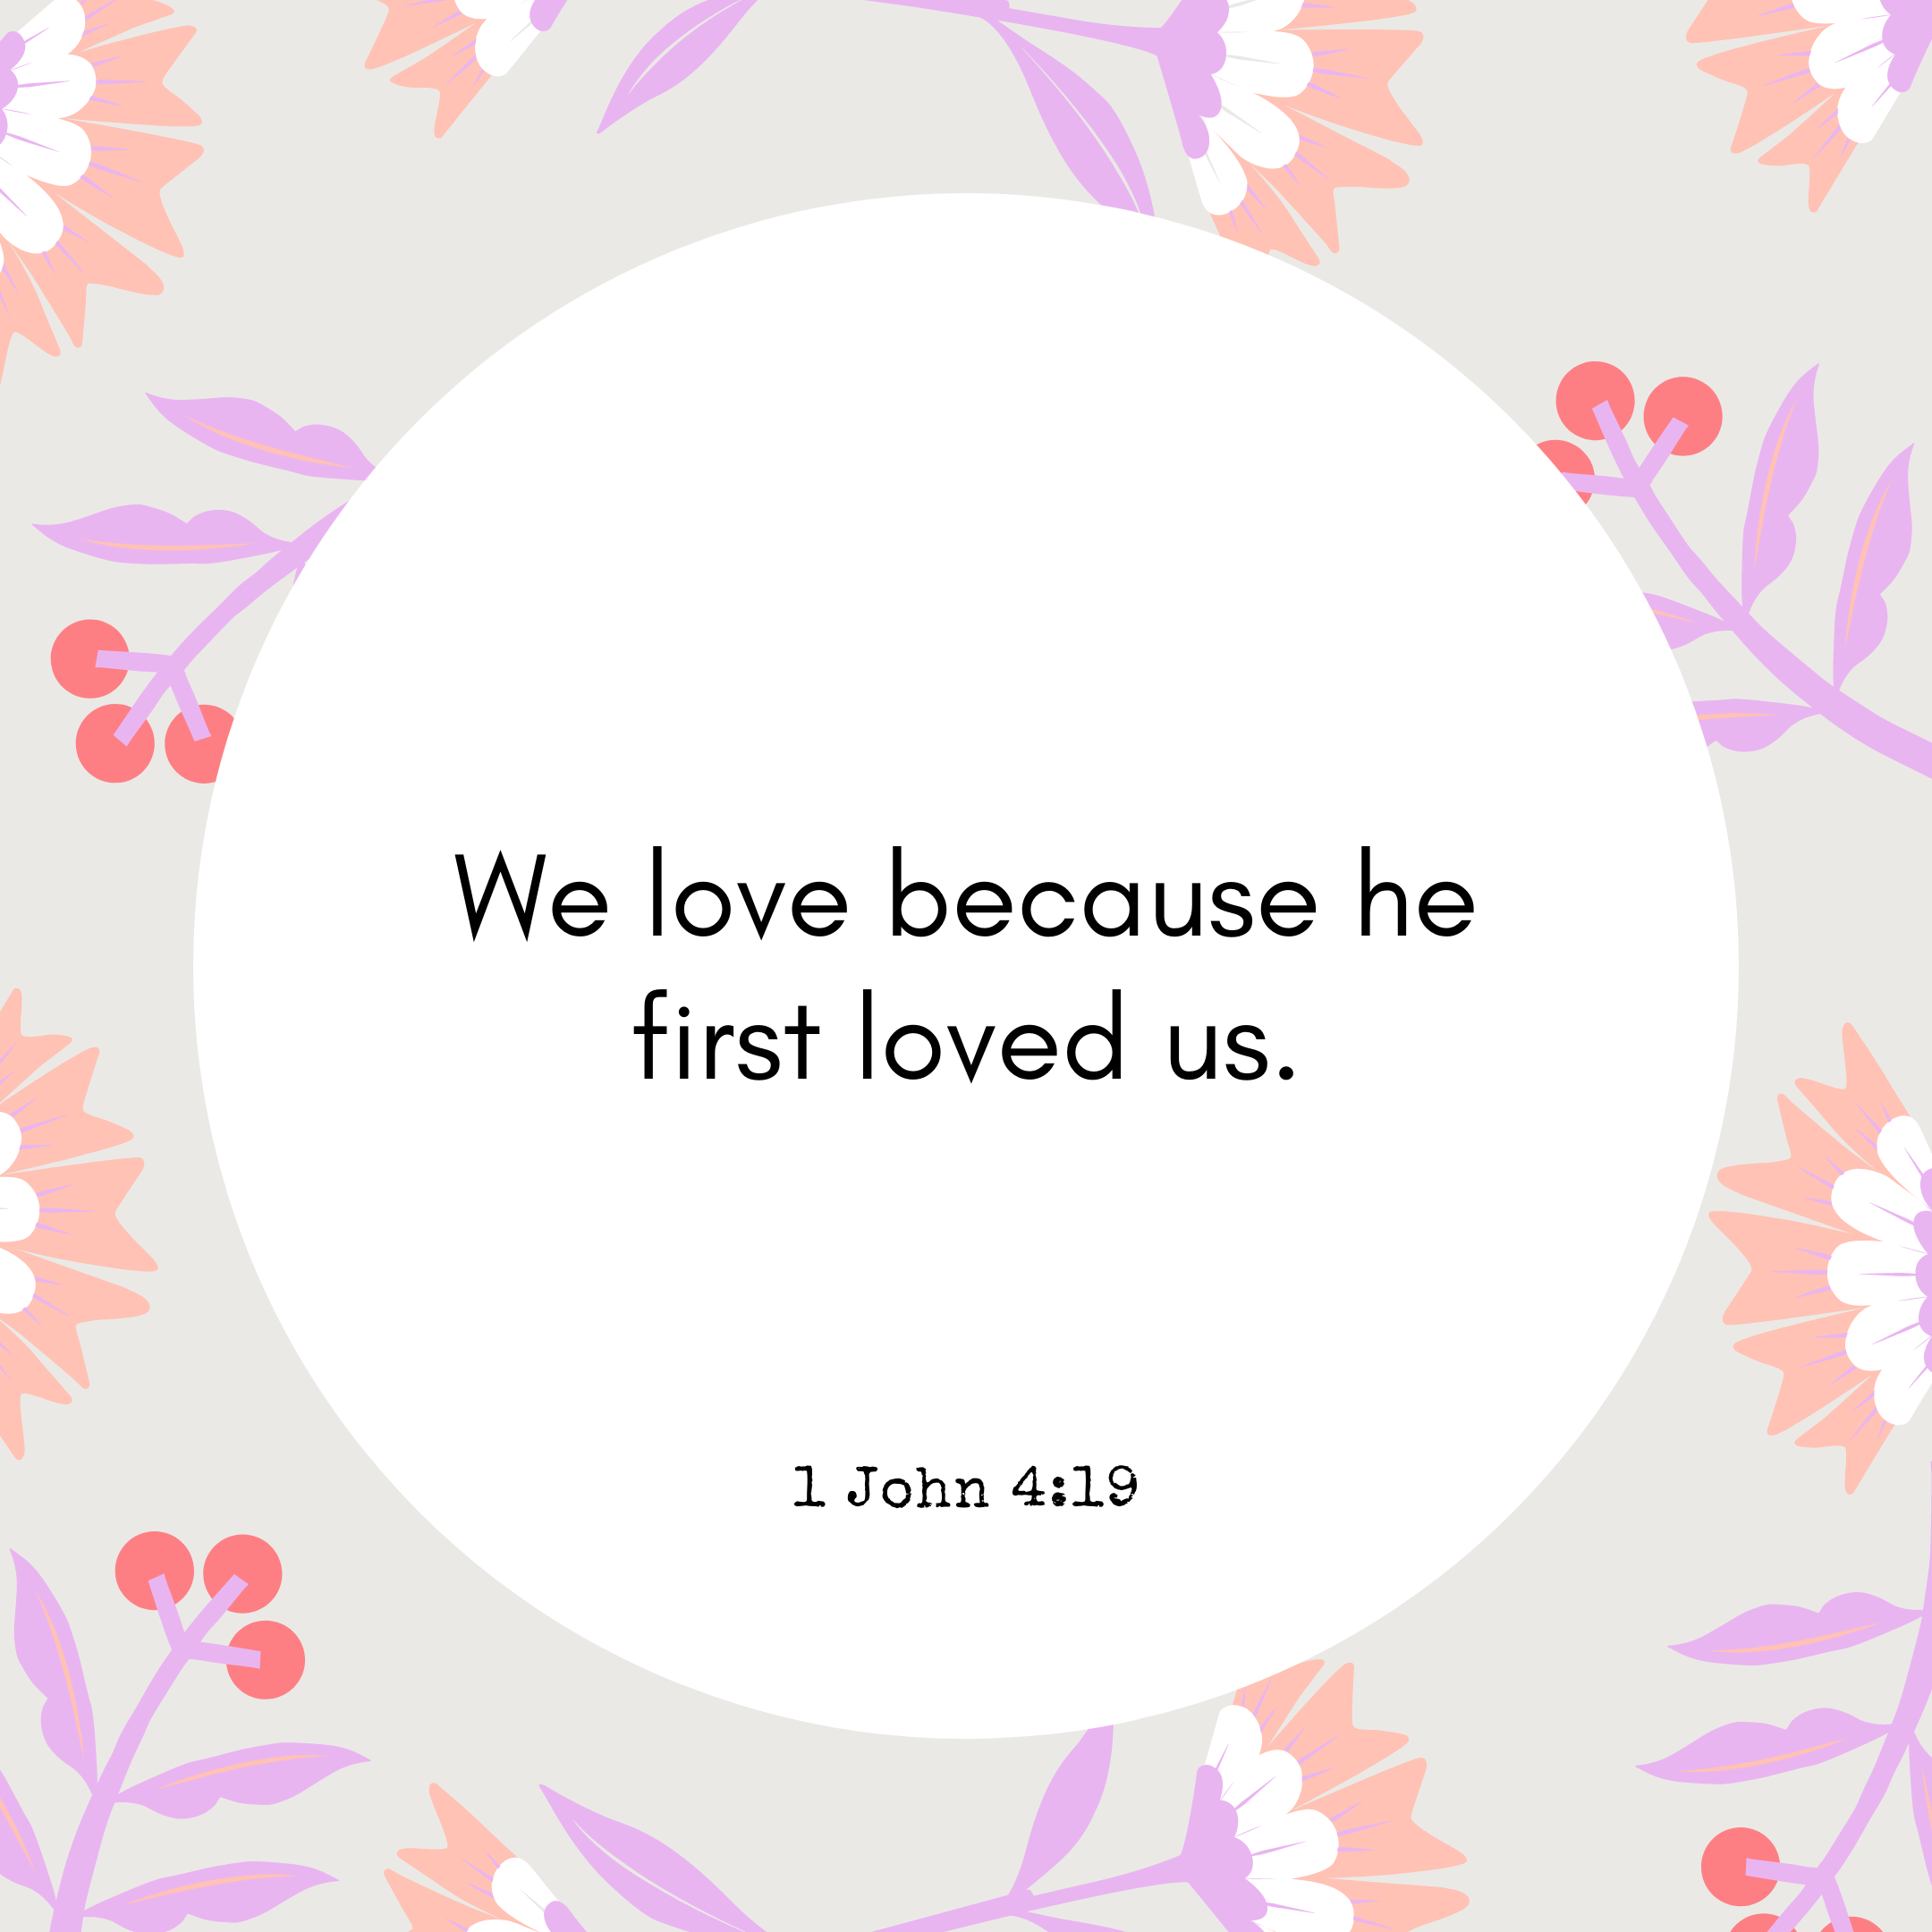 1 John 4:19 We love because he first loved us.